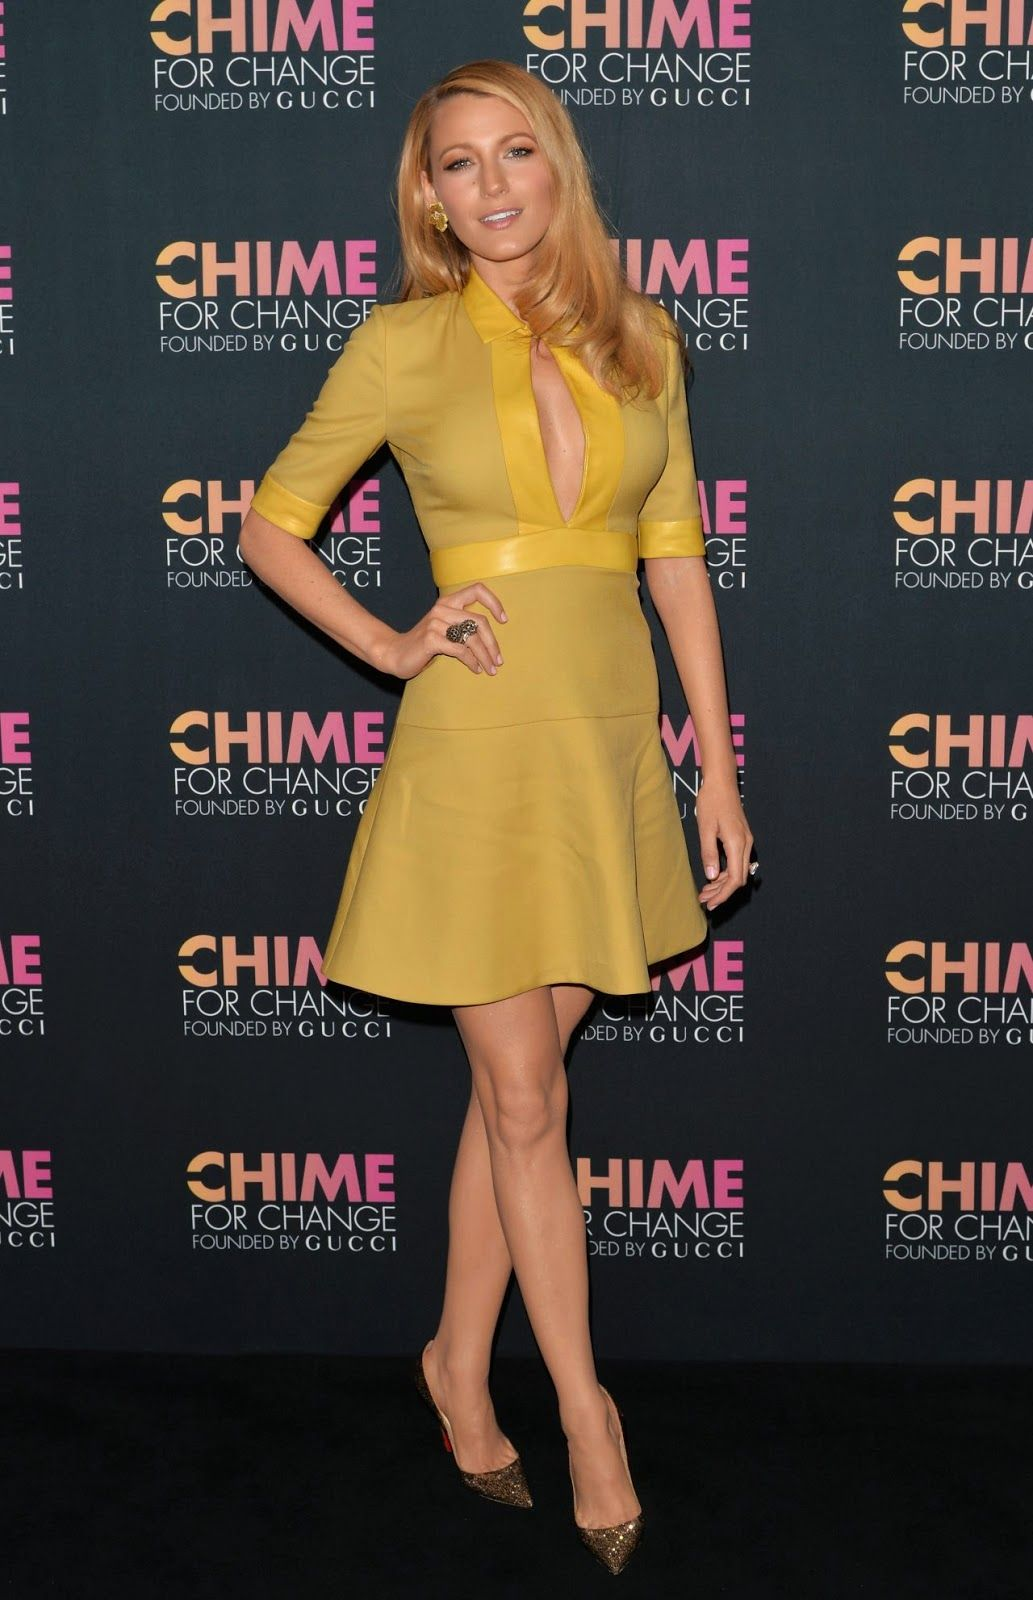 Blake Lively – 2014 CHIME FOR CHANGE Event in New York City | Blake ...